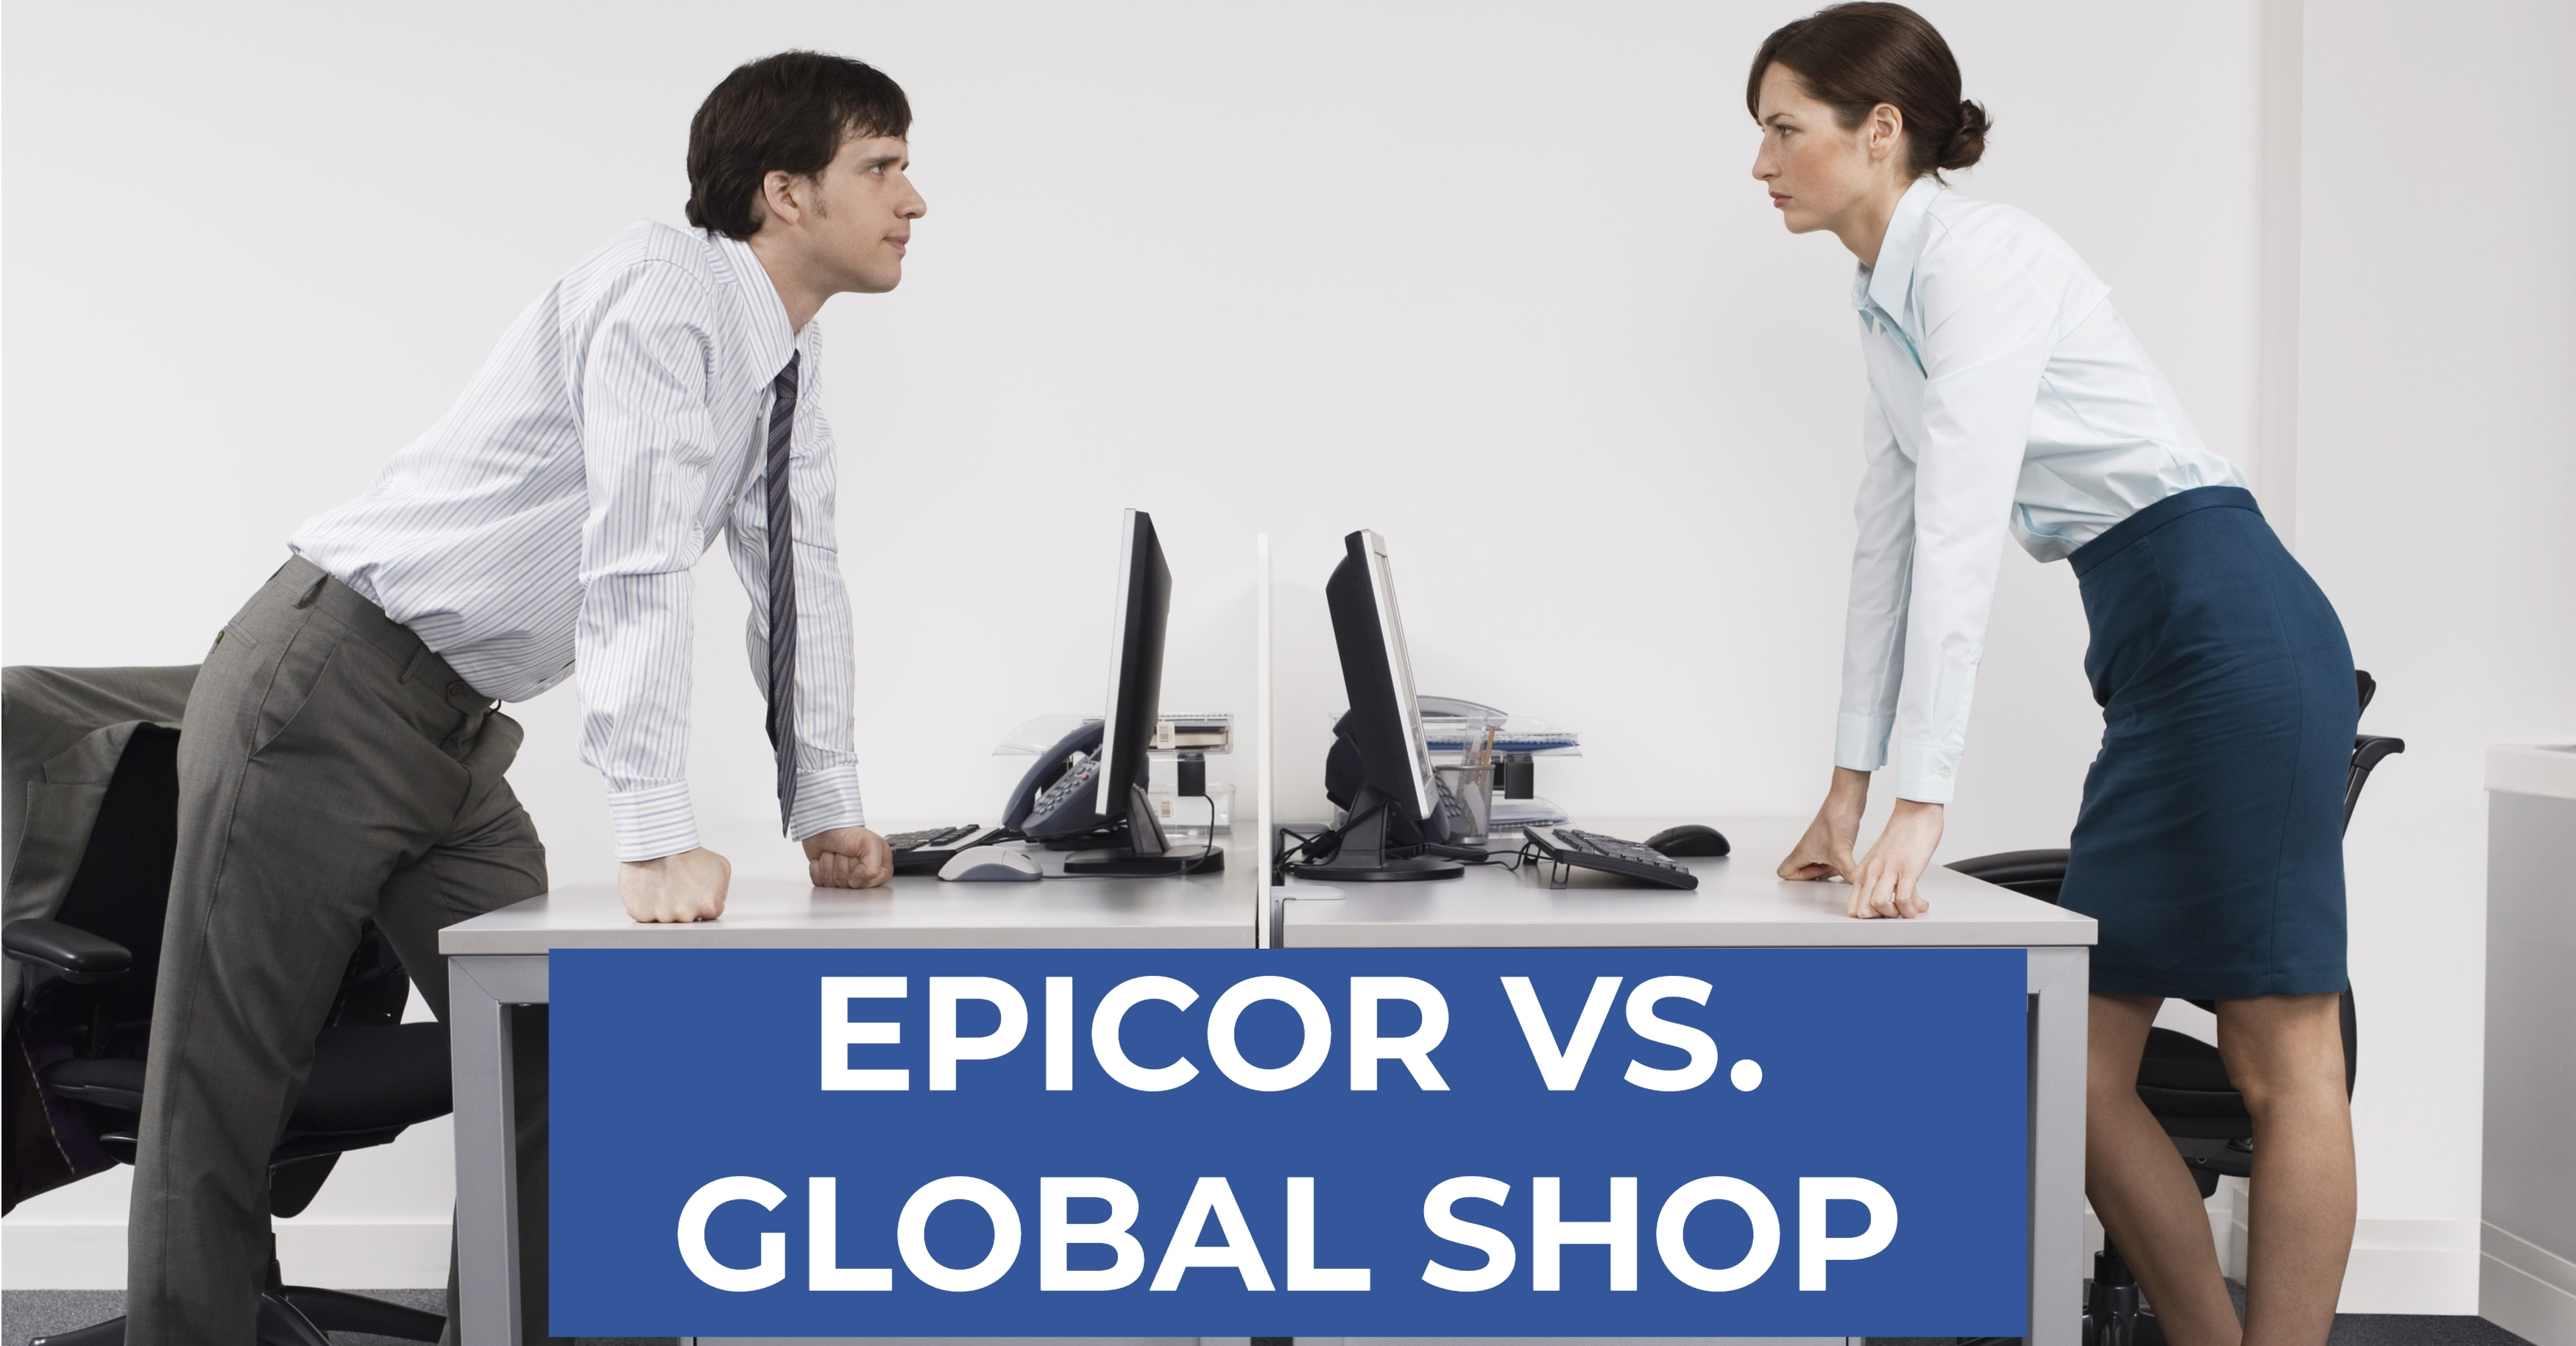 Epicor vs. Global Shop: Which ERP is Best for SMBs?